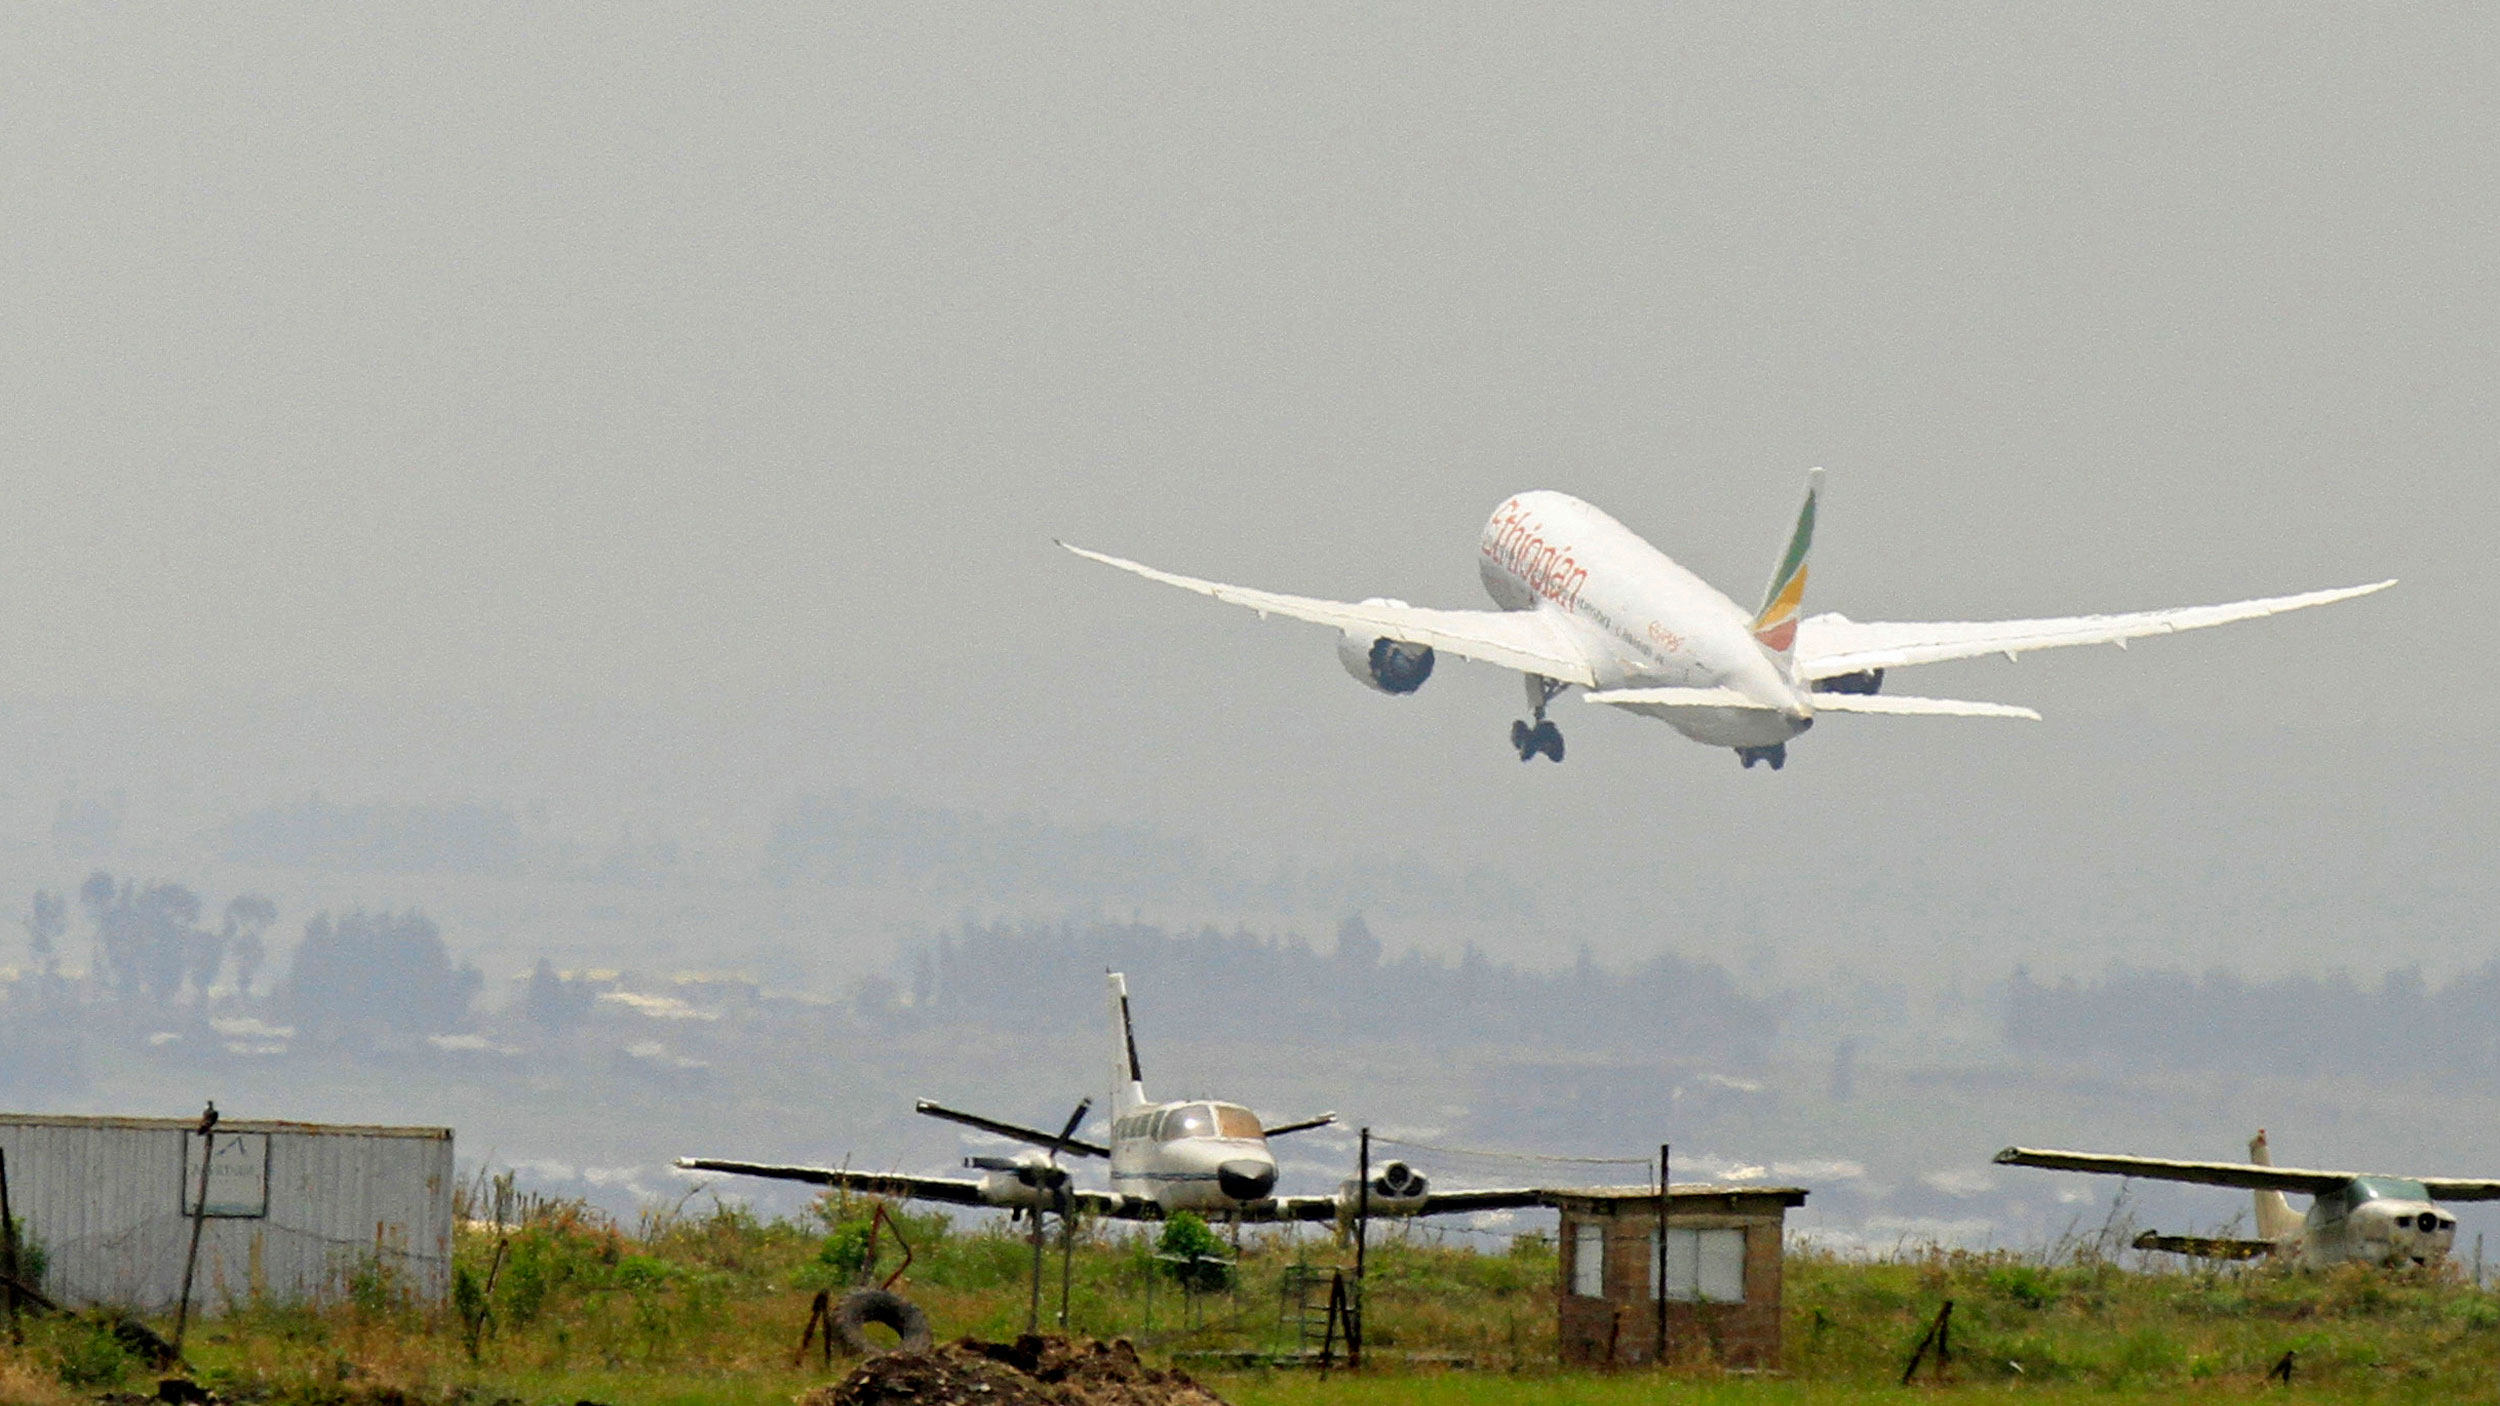 China to Africa flights jumped 630% in the past nine years